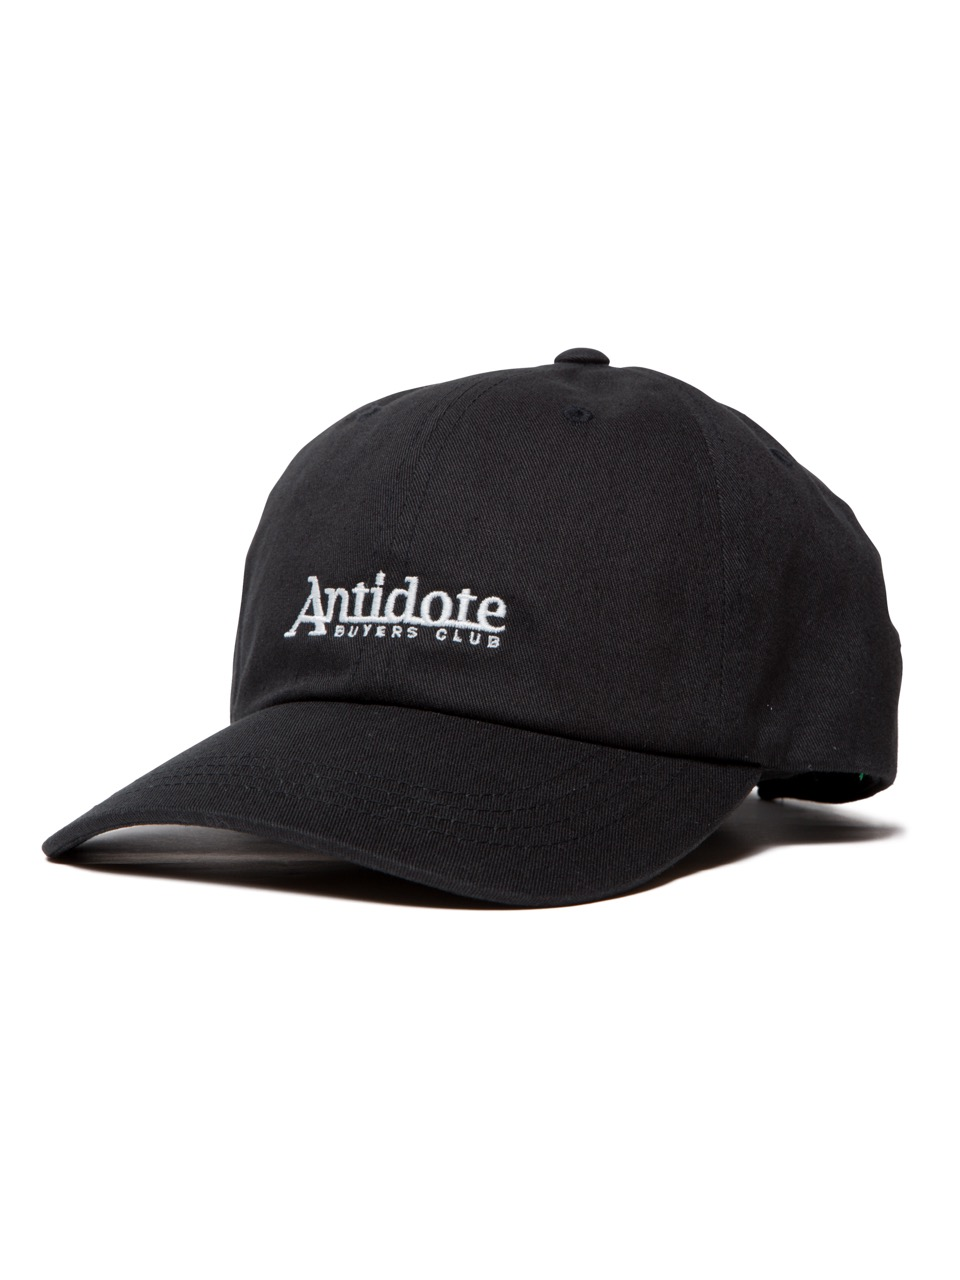 ANTIDOTE BUYERS CLUB  Curved Brim 6 Panel Cap (CLASSIC)